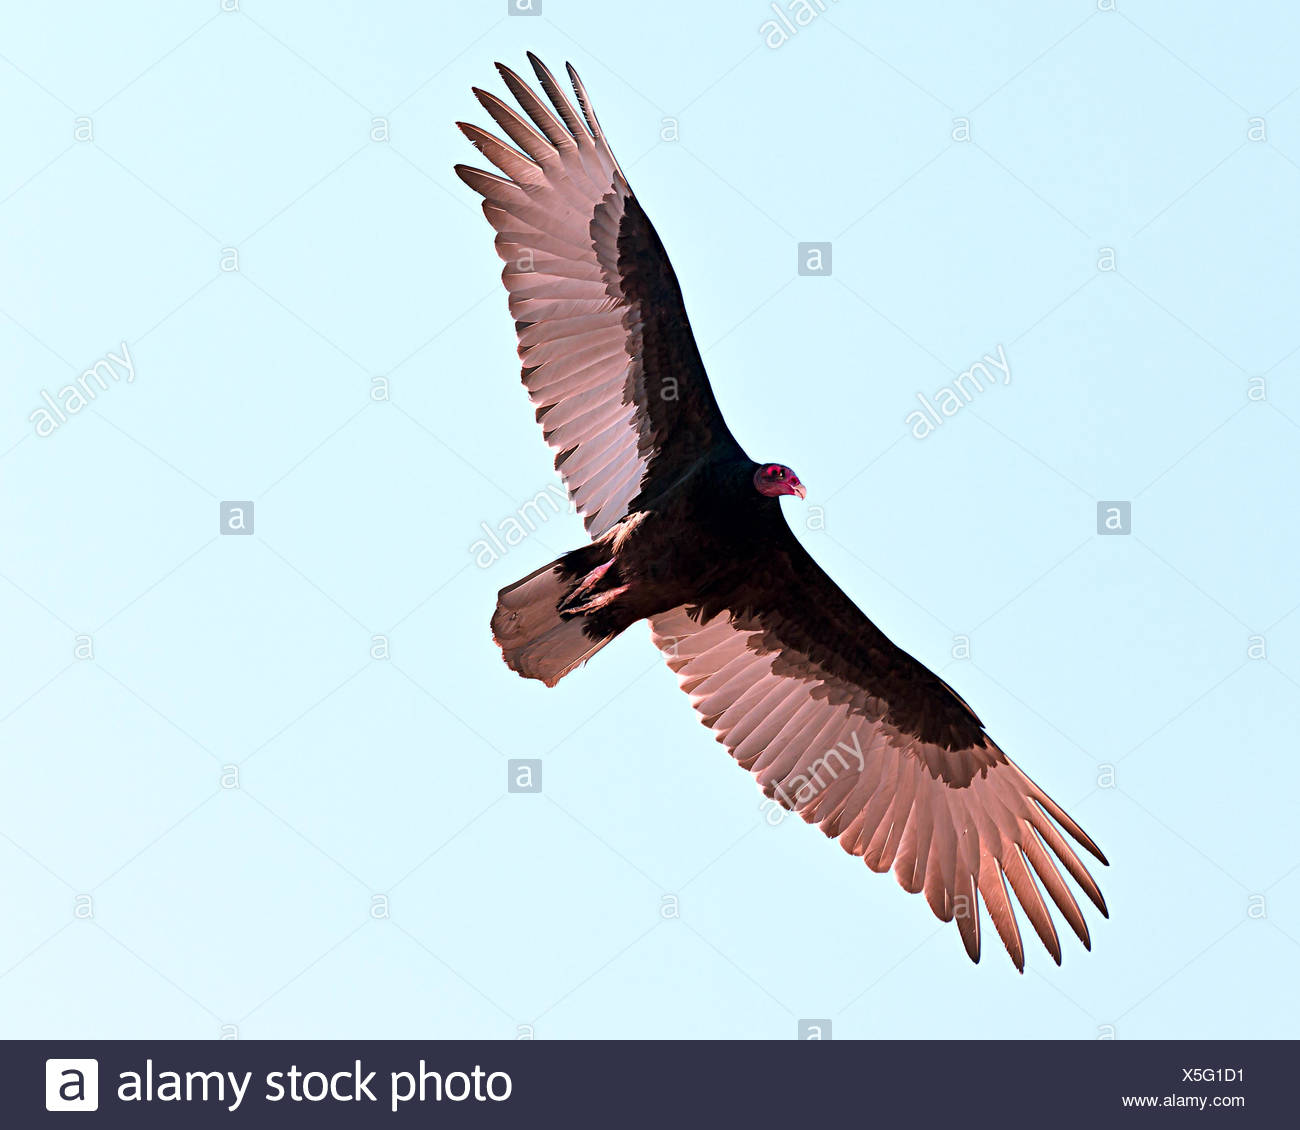 Turkey Vulture gliding in sky, Arizona, USA - Stock Image